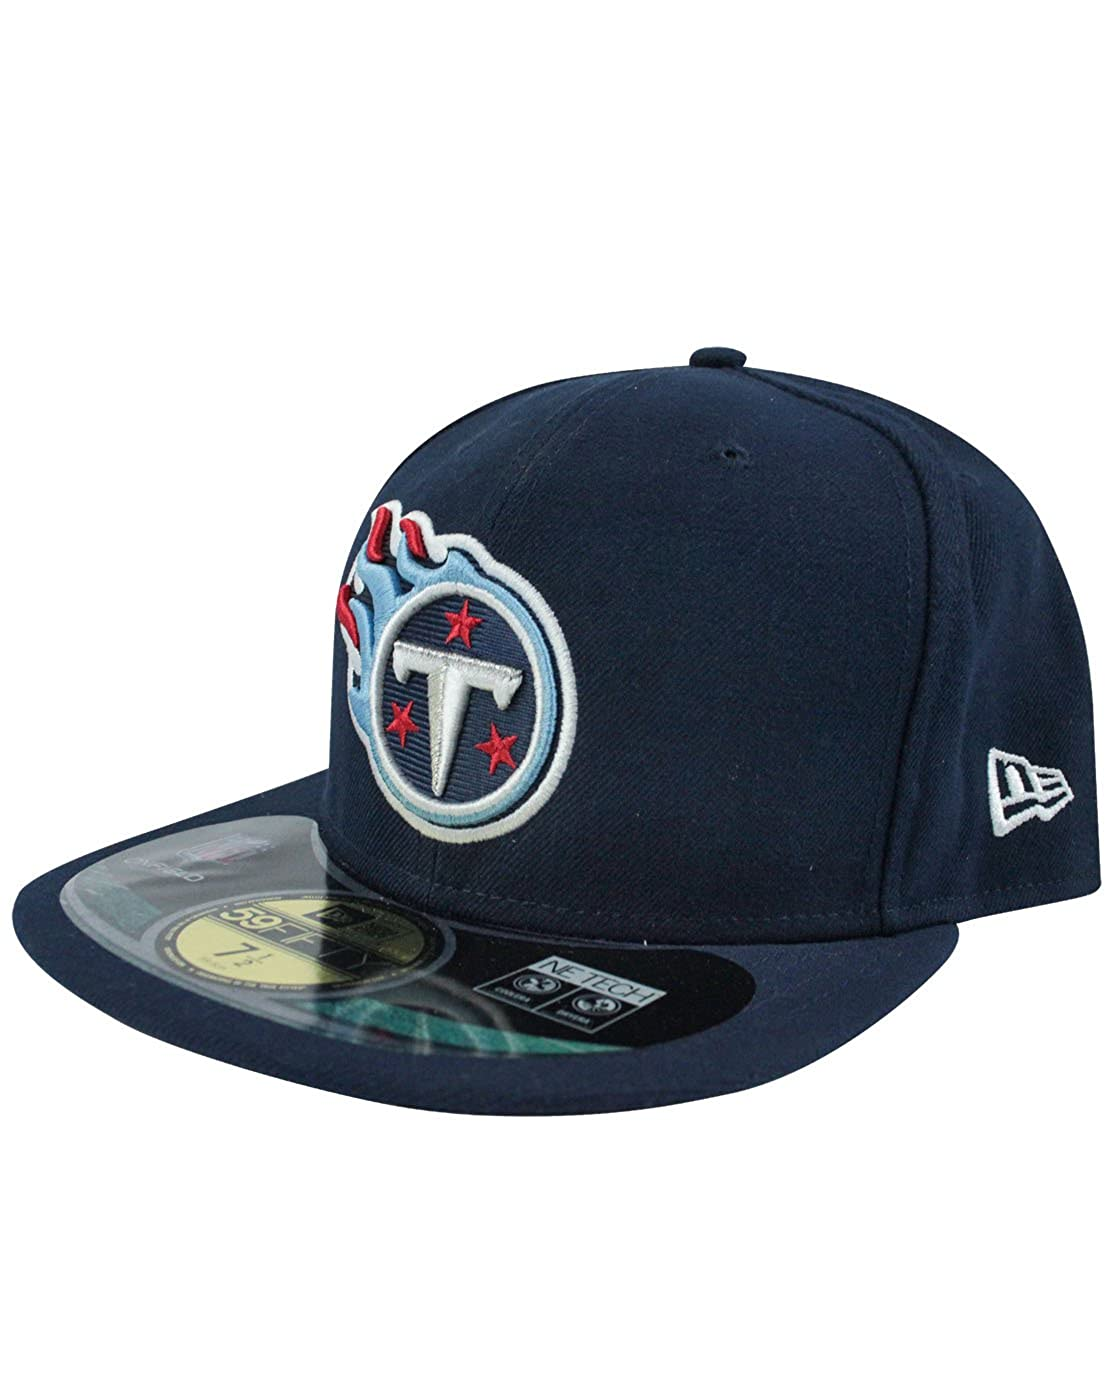 on sale 44194 db88d Amazon.com  New Era 59Fifty NFL Tennessee Titans Cap  Clothing